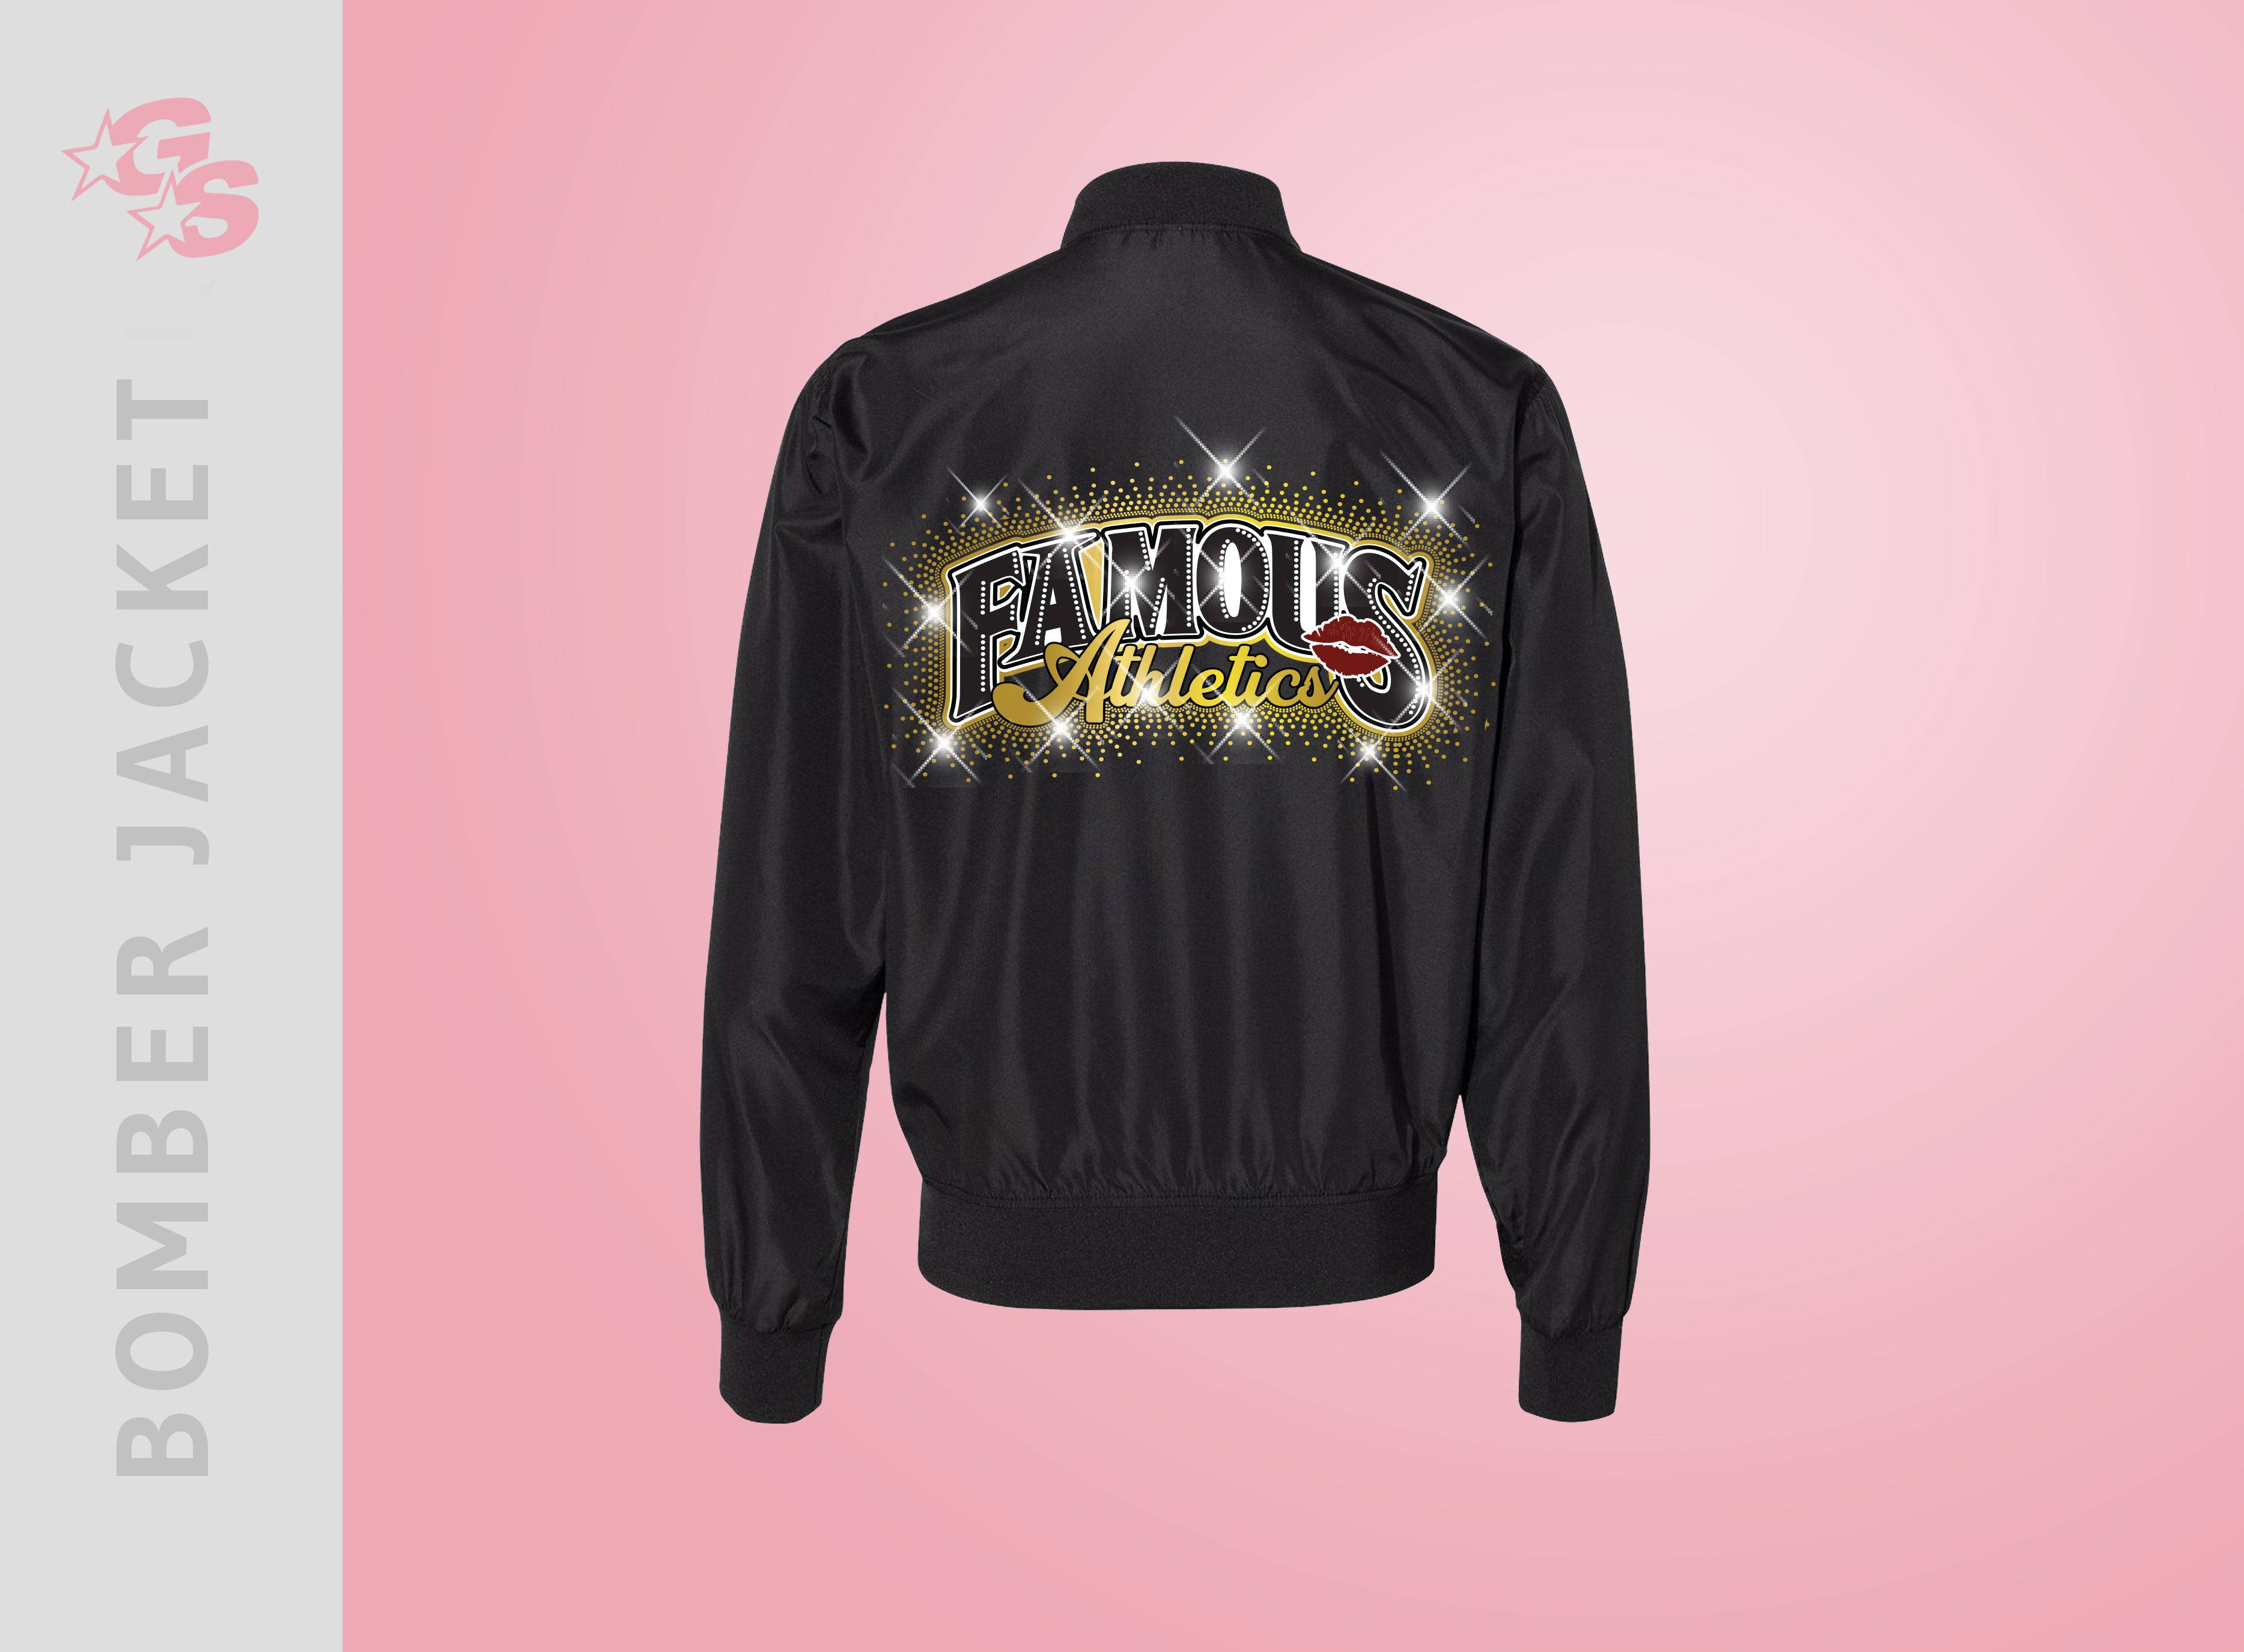 Famous Athletics Bomber Jacket with Vinyl and Bling Mix Logo - Adult Sizes Only